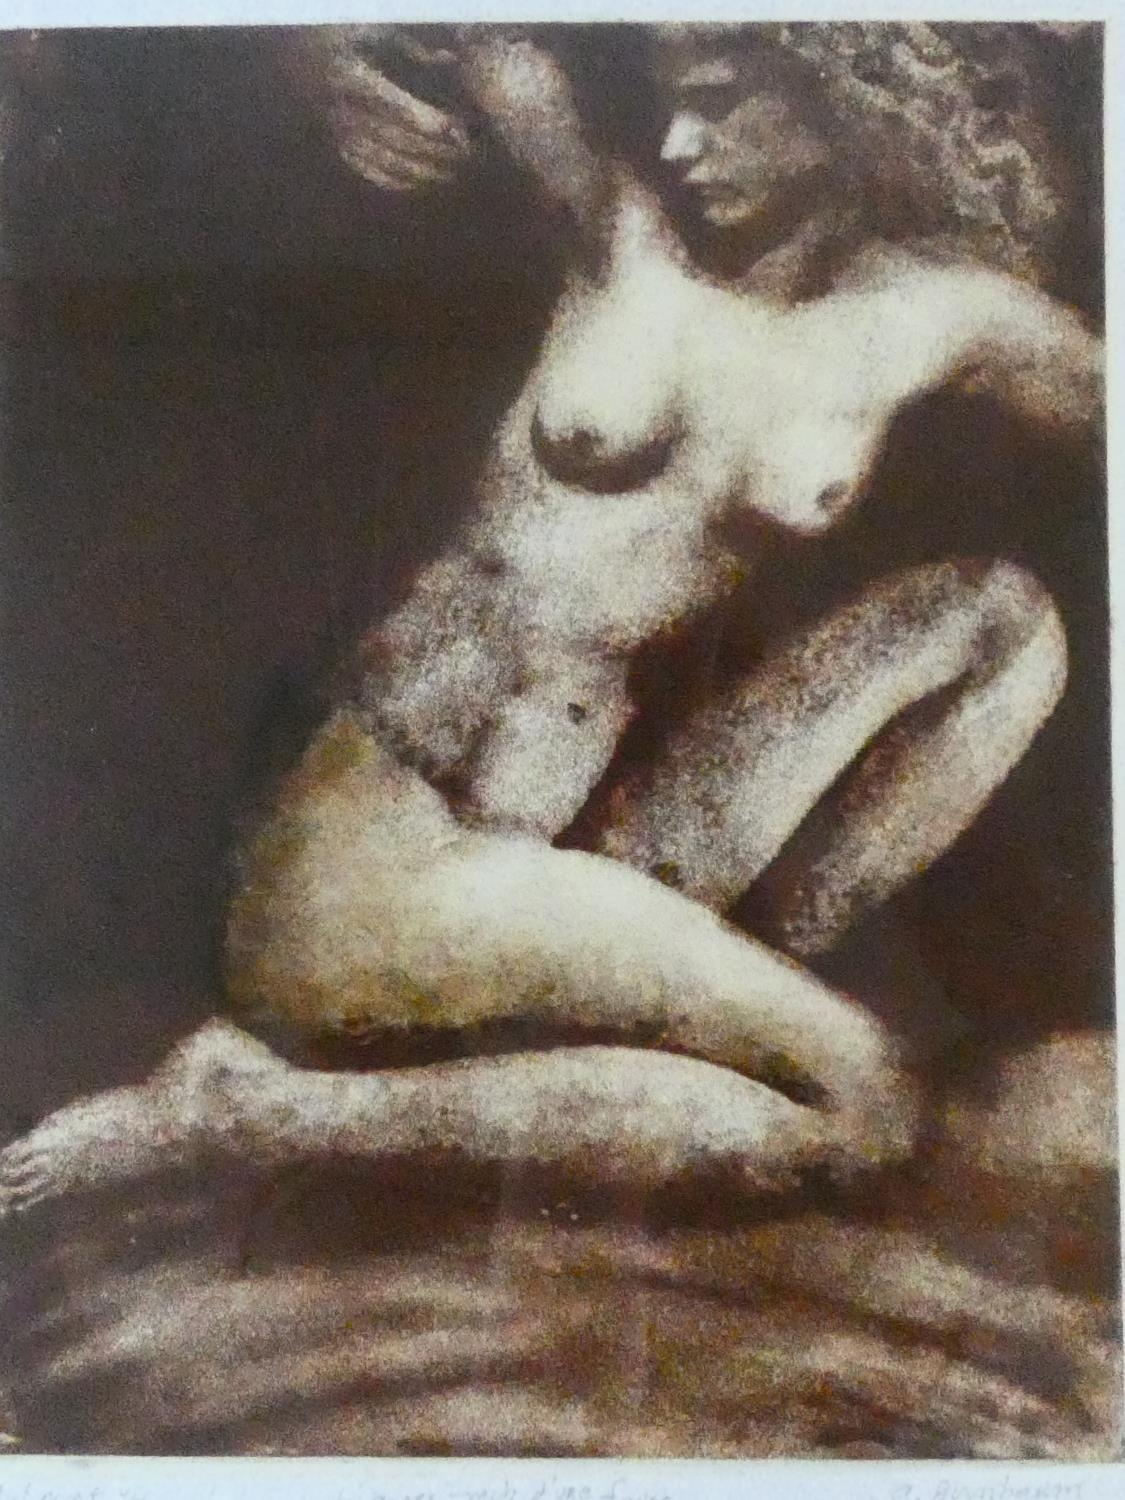 A framed and glazed limited signed artist's proof etching by American artist Aimee Birnbaum,